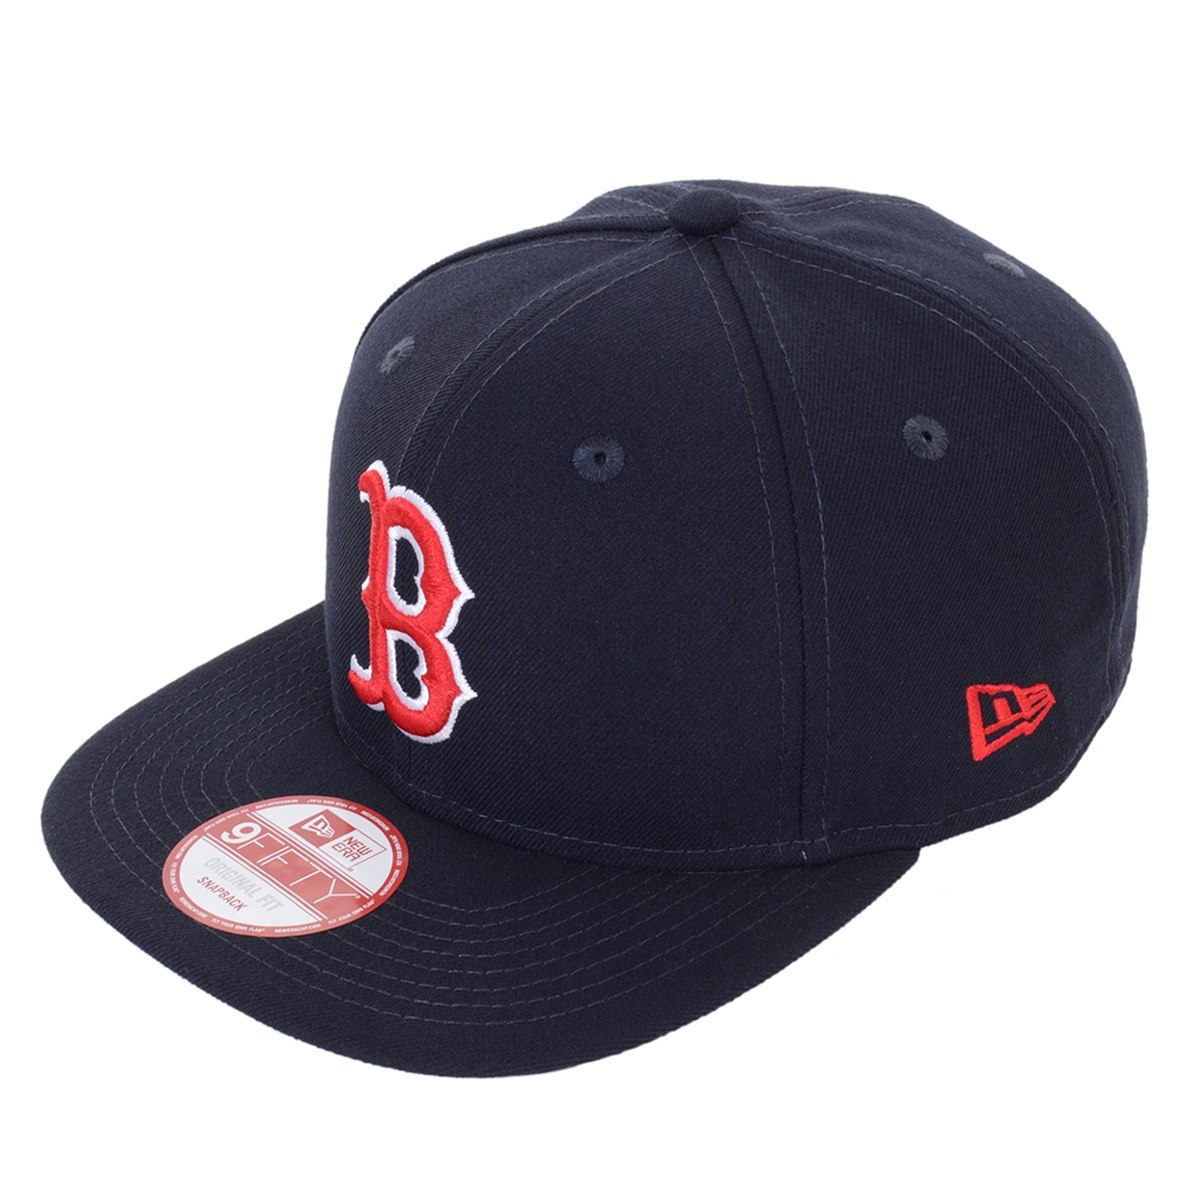 boné masculino new era 950 tribute turn boston red sox. Carregando zoom. 358fcff60a3